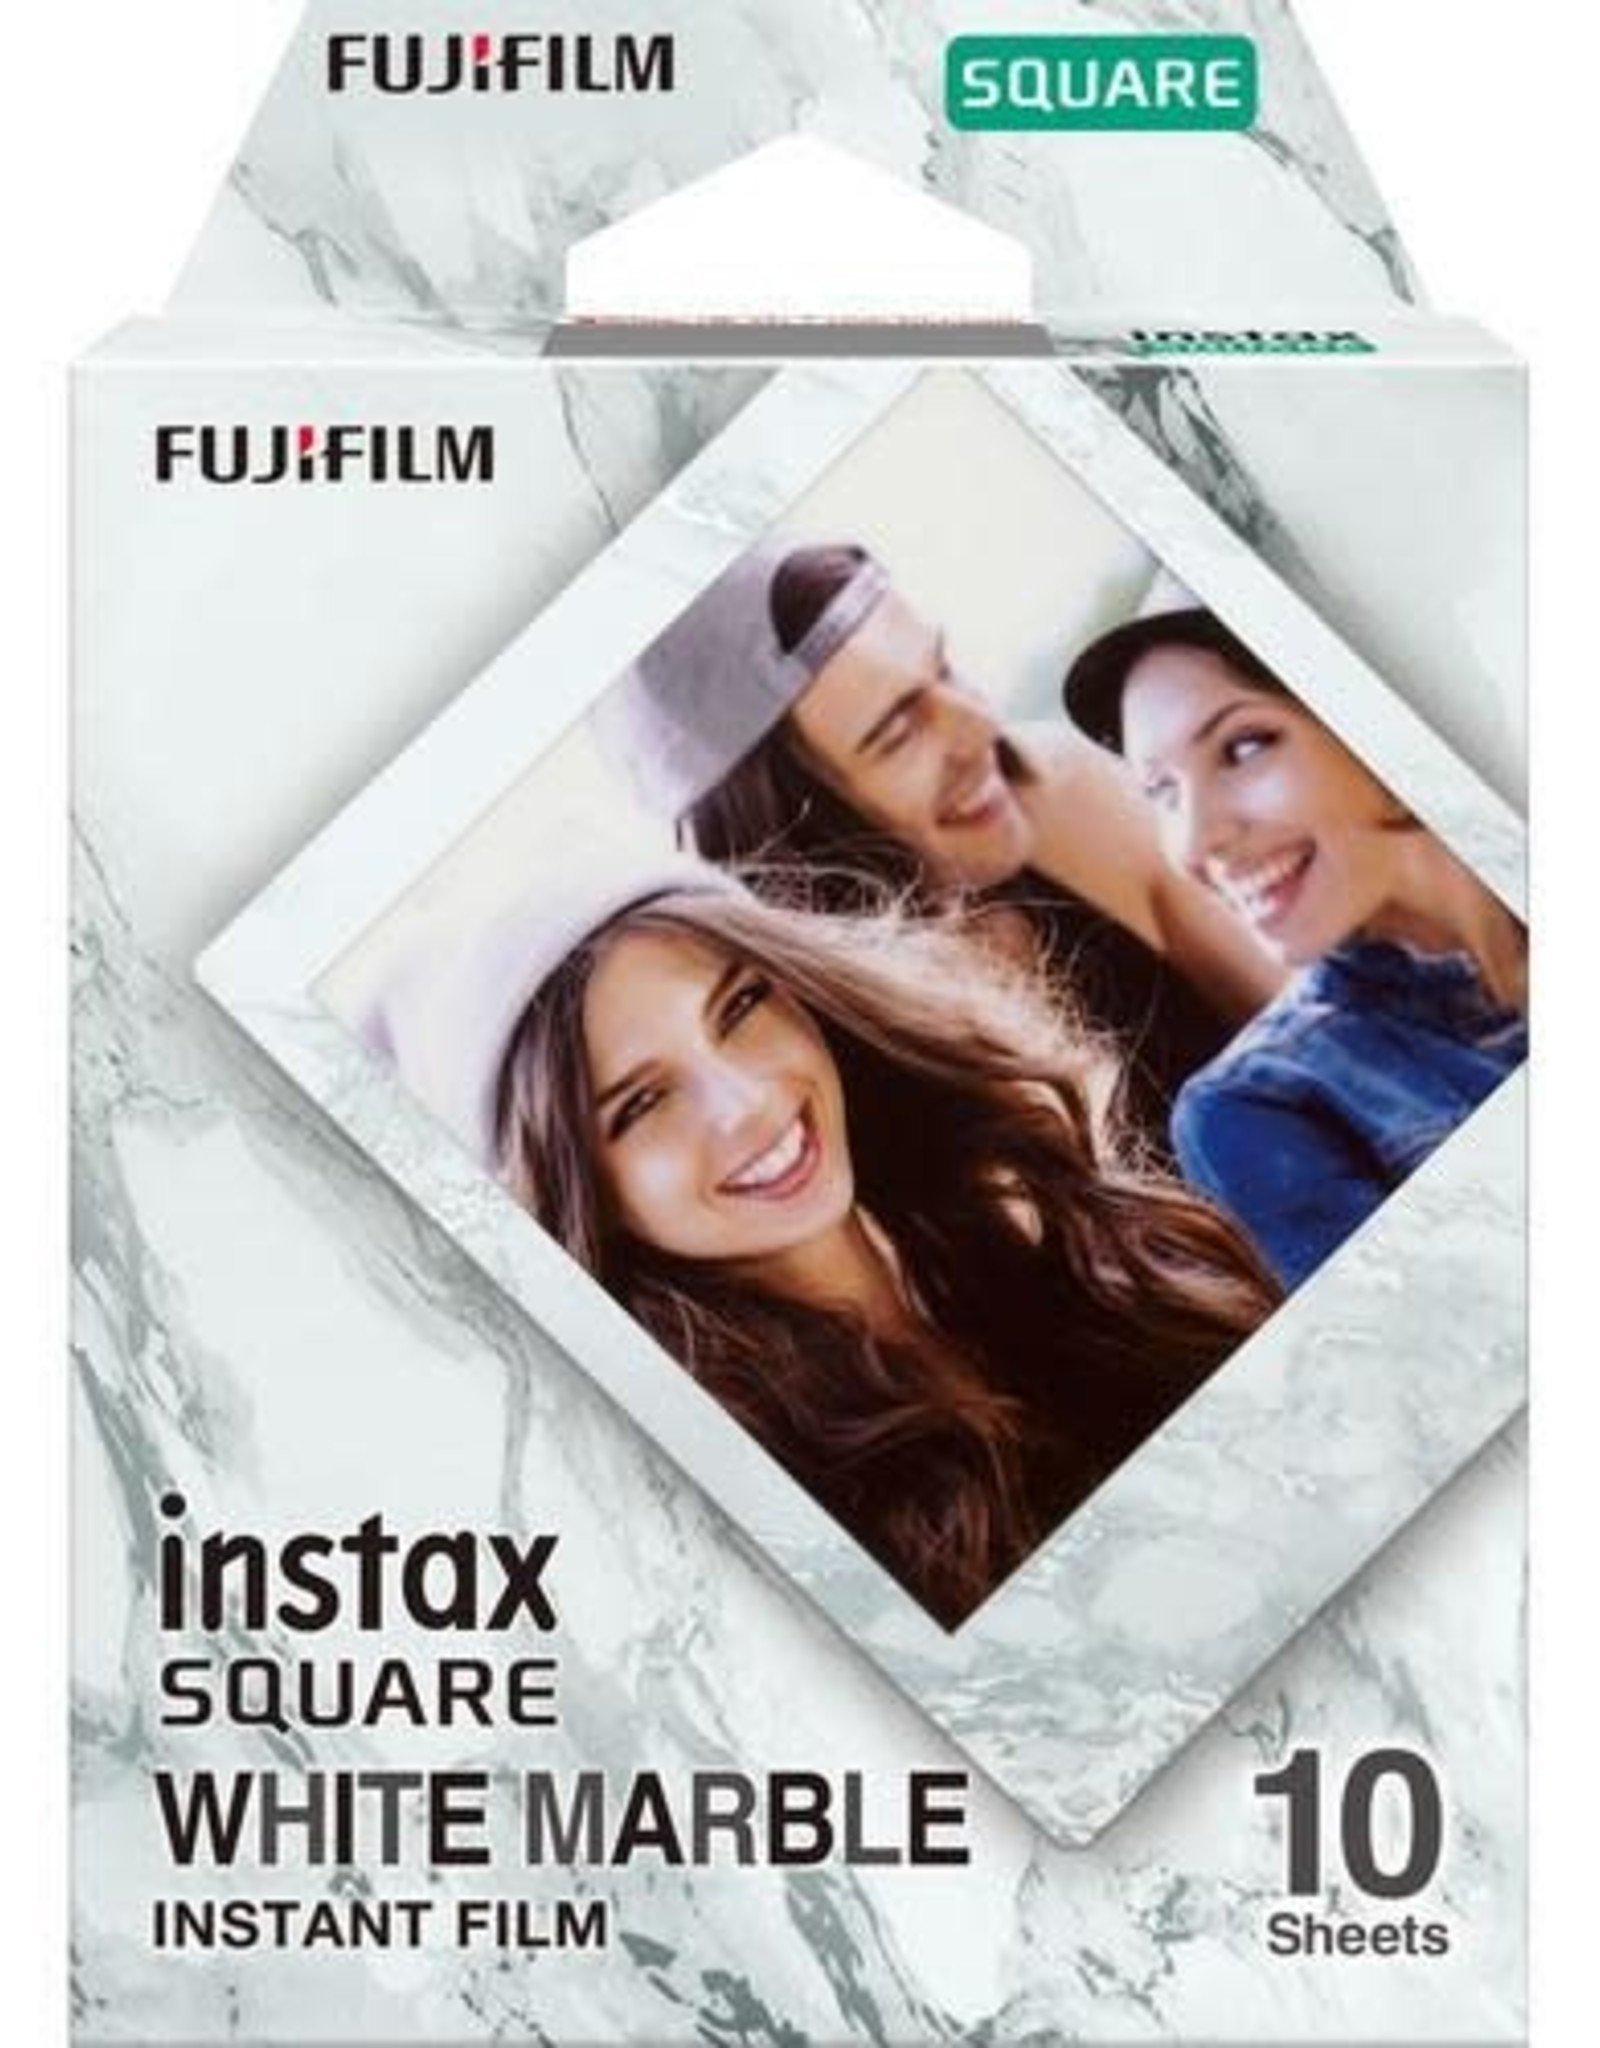 Instax INSTAX SQ FILM WHITE MARBLE - 10EXP 600021637